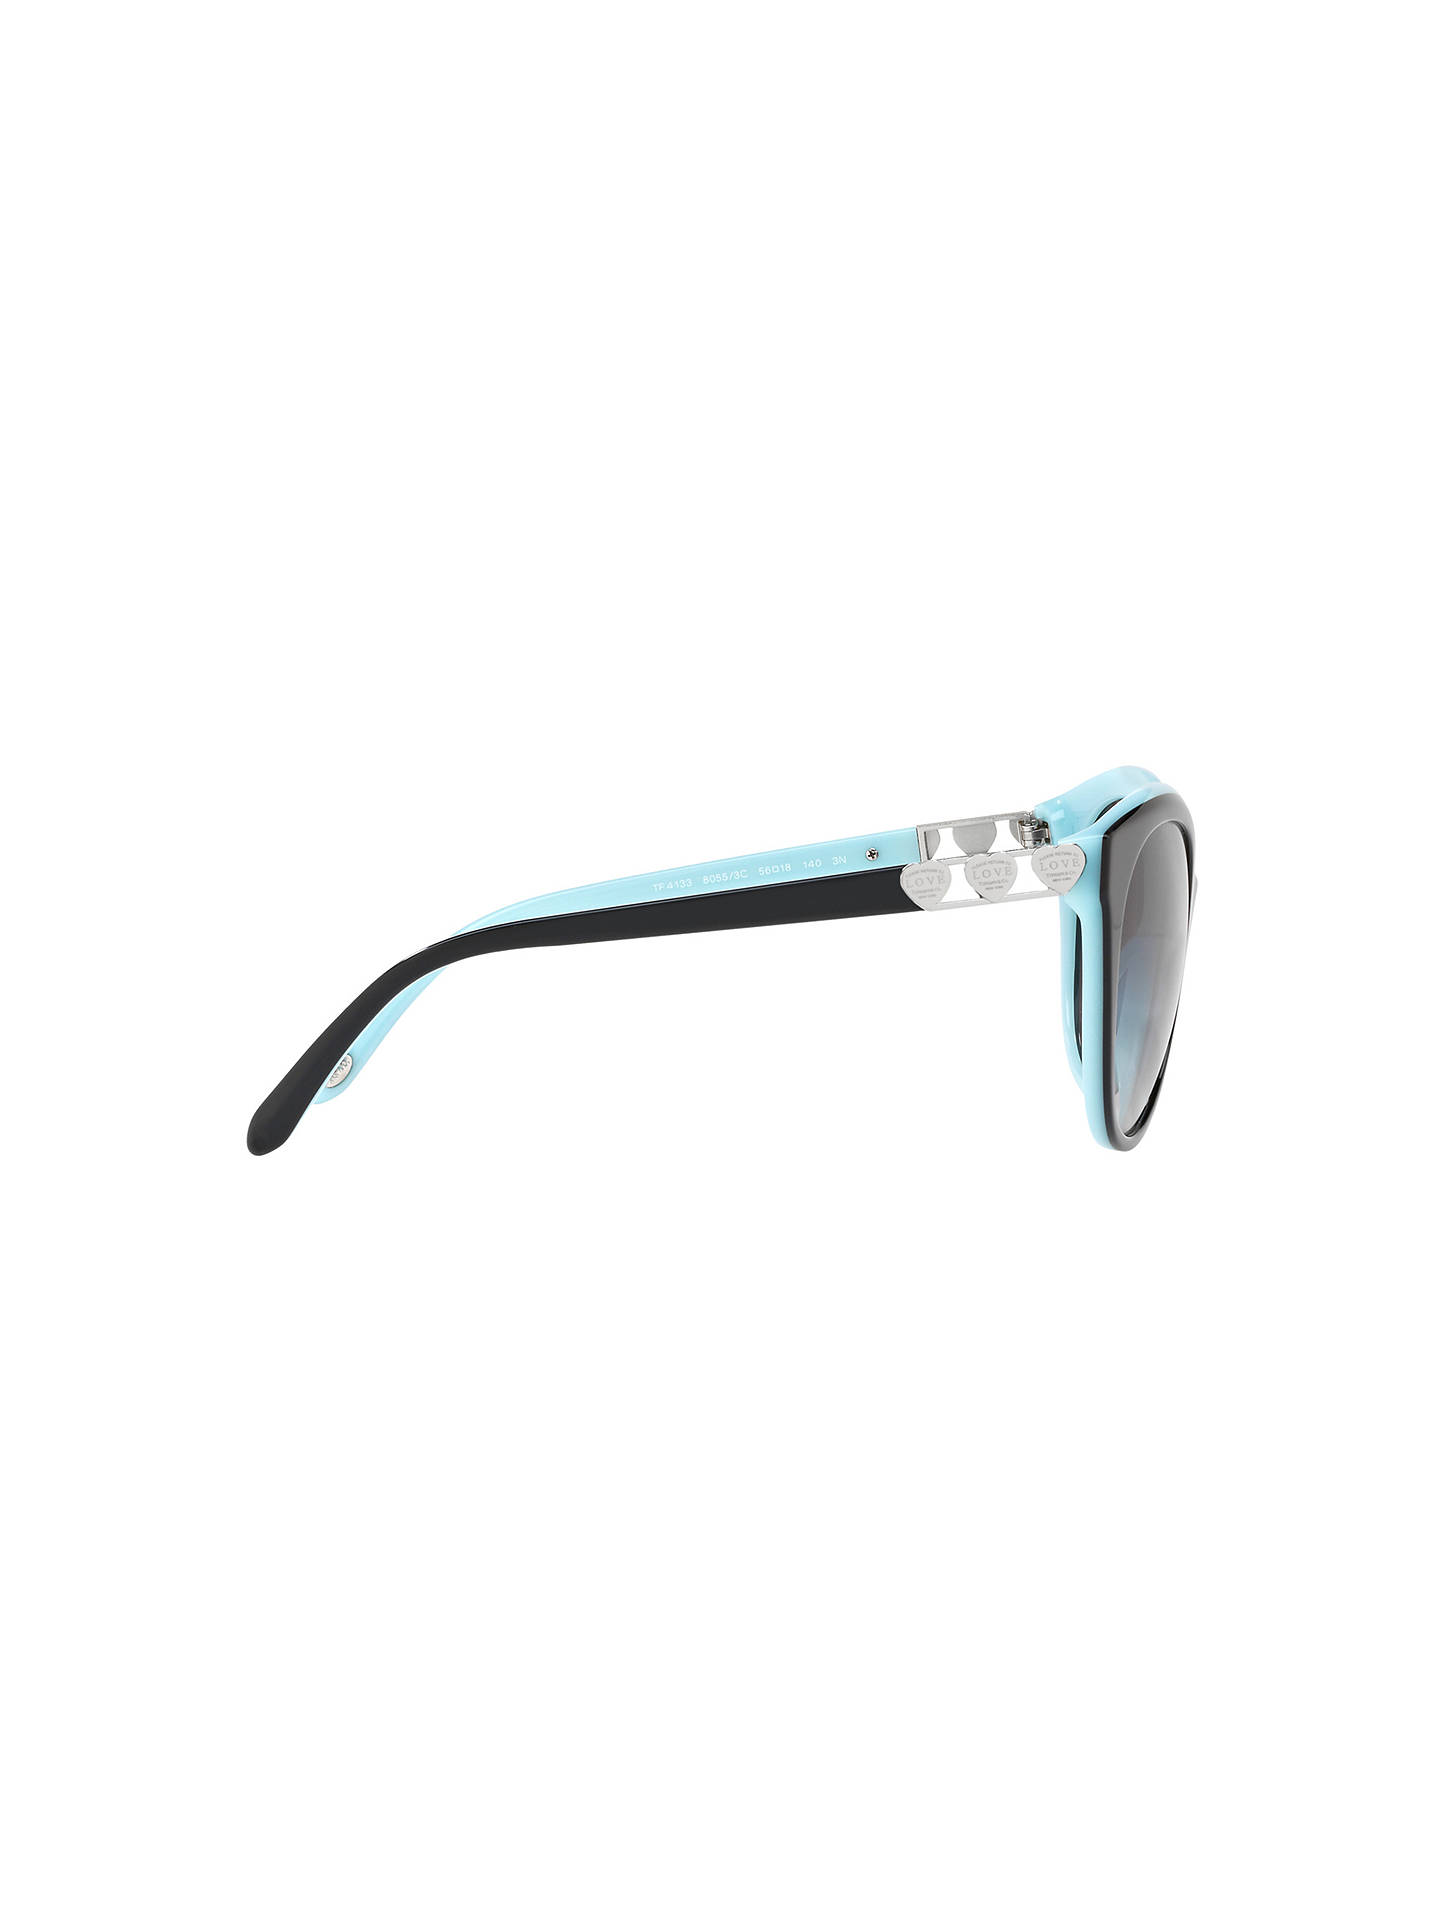 Buy Tiffany & Co TF4140 Women's Oval Sunglasses, Black/Grey Gradient Online at johnlewis.com